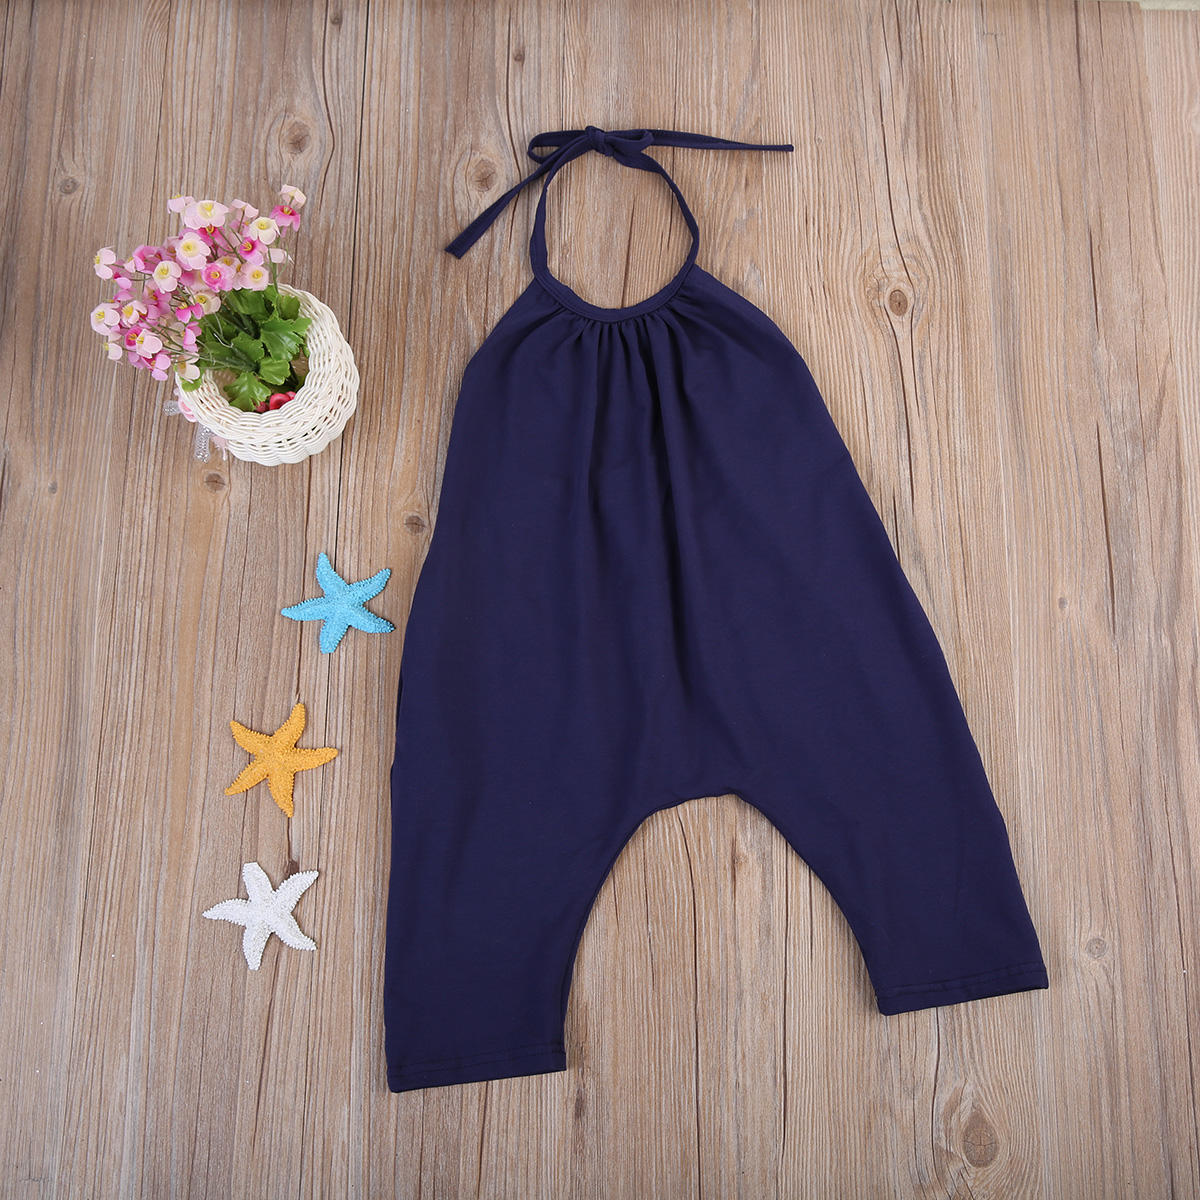 2017-Summer-Kids-Baby-Girls-Strap-Cotton-Romper-Jumpsuit-Harem-Trousers-Summer-Clothes-2